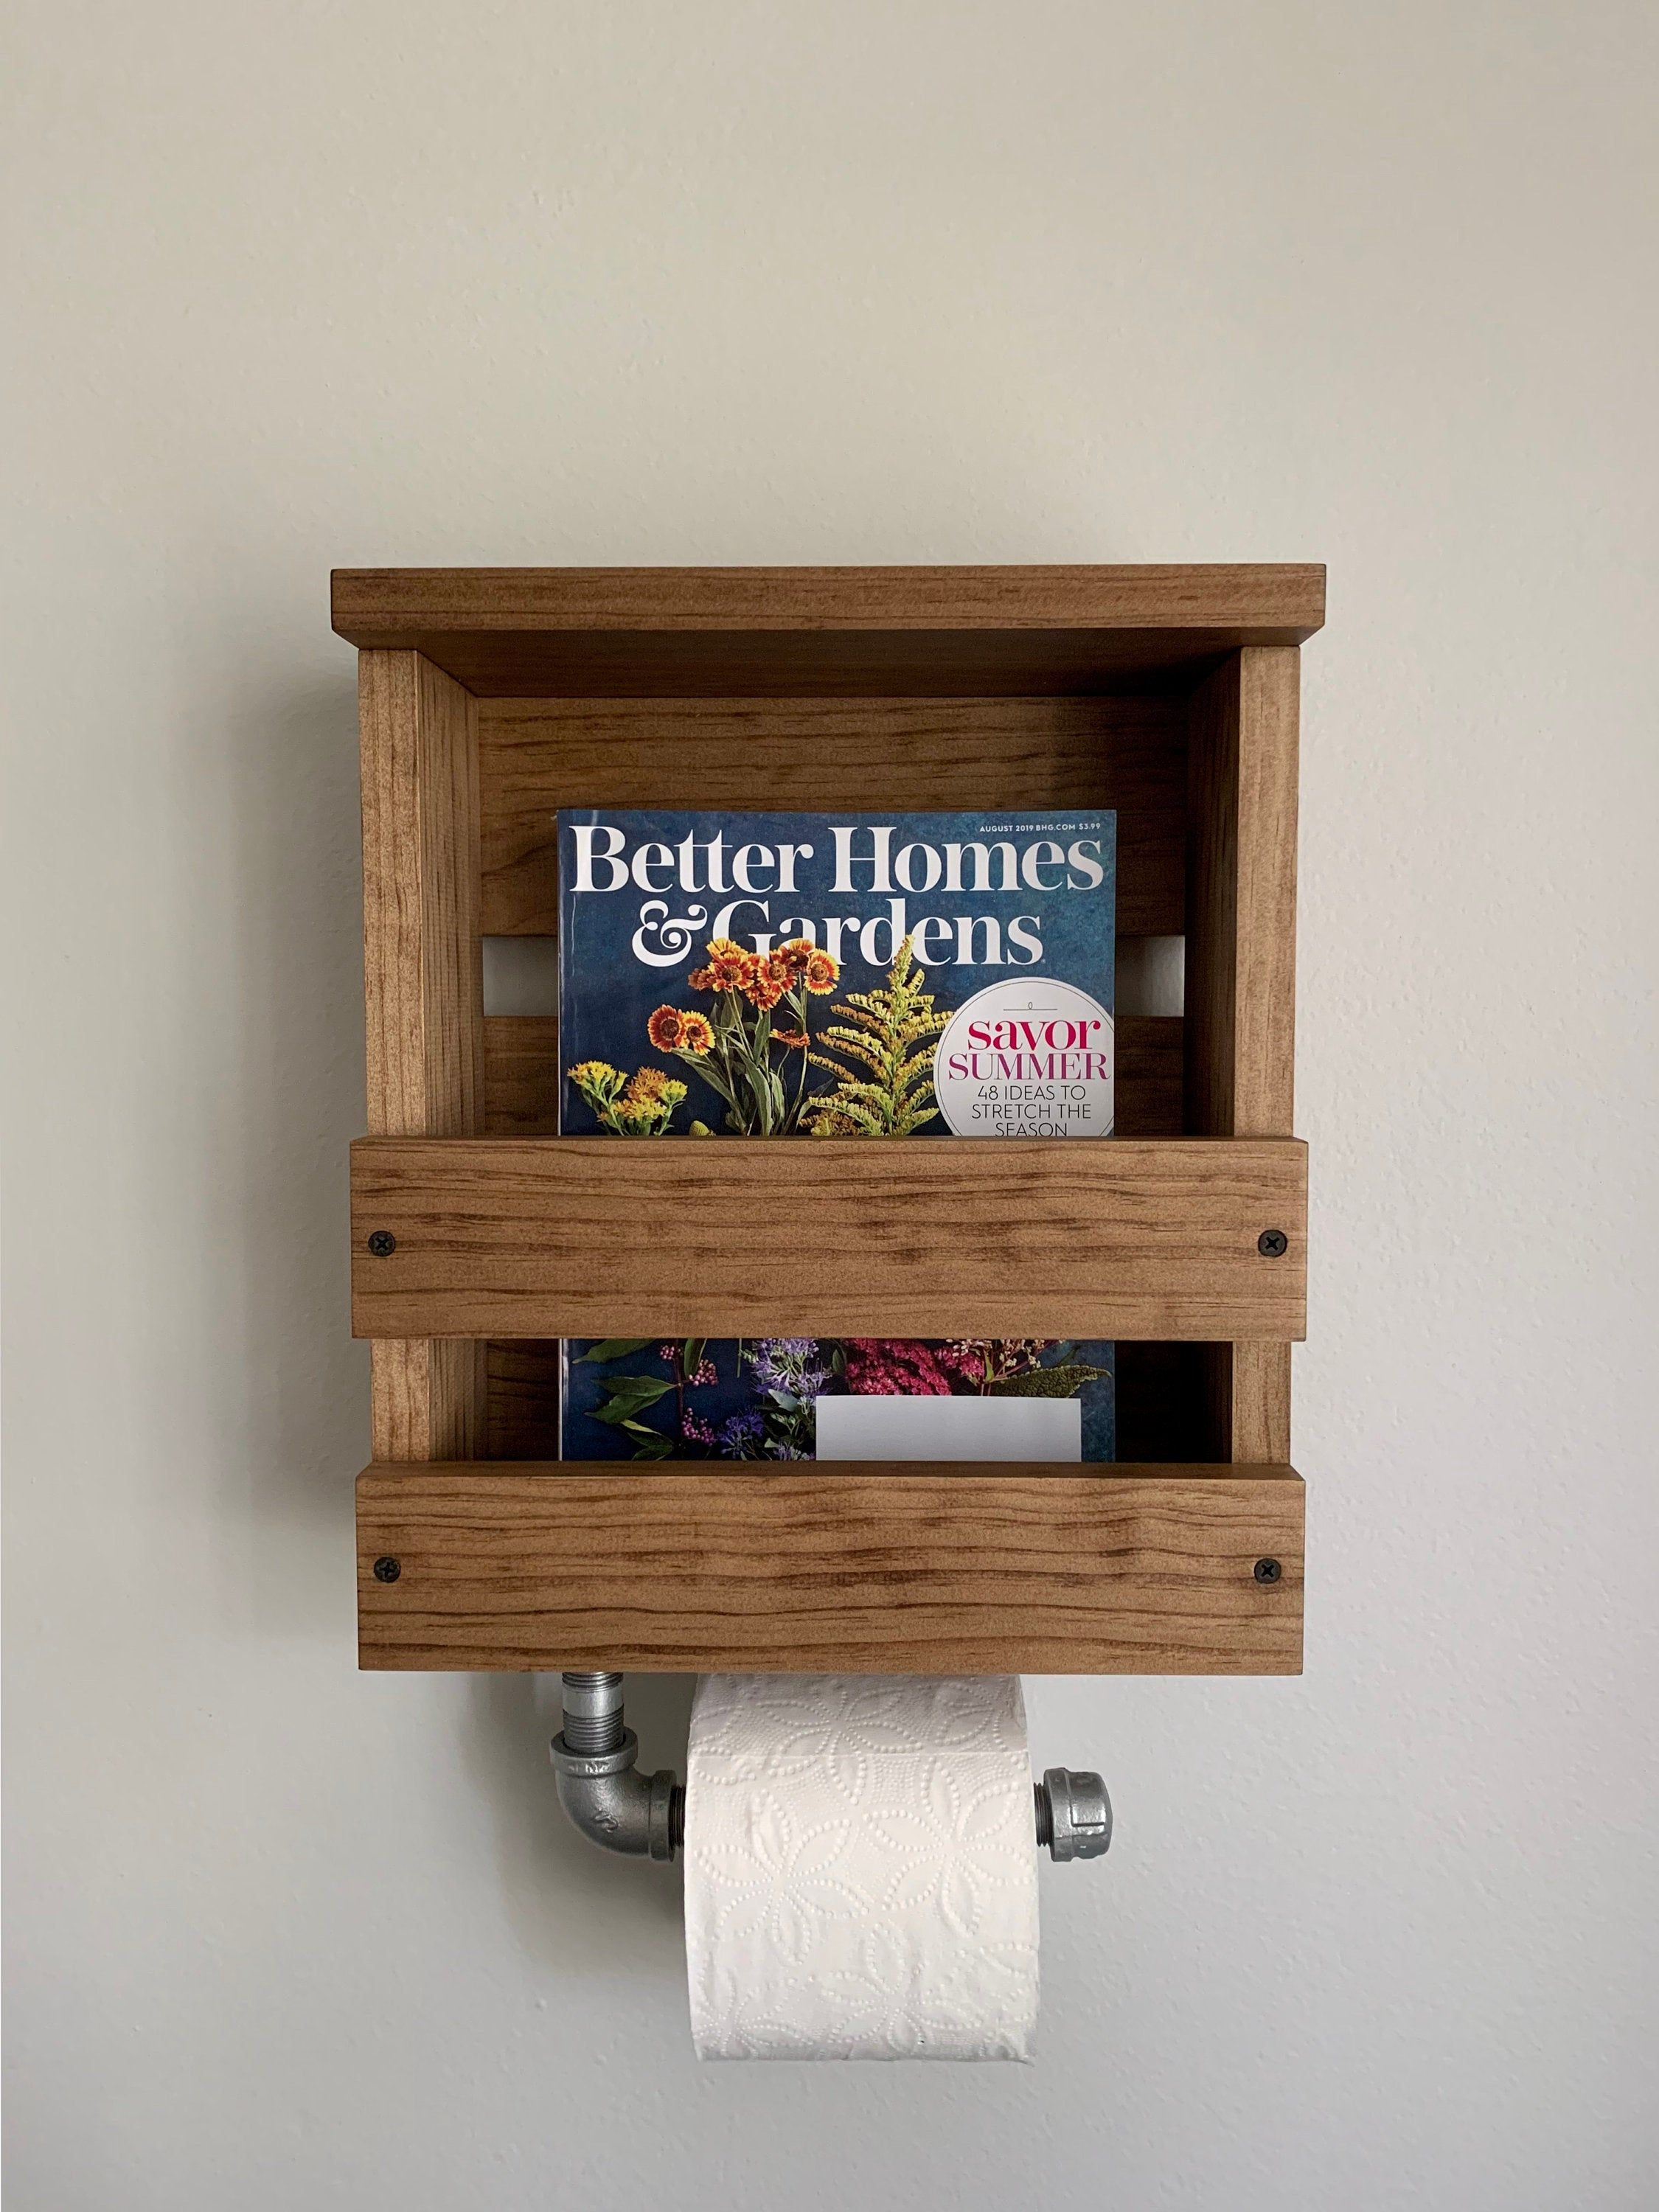 Magazine And Toilet Paper Holder With Shelf Industrial Toilet Paper Holder With Shelf Magazine Rack Wall Mounted Rack With Shelf Rustic Toilet Paper Holder Shelf Toilet Paper Holder Industrial Rustic Toilet